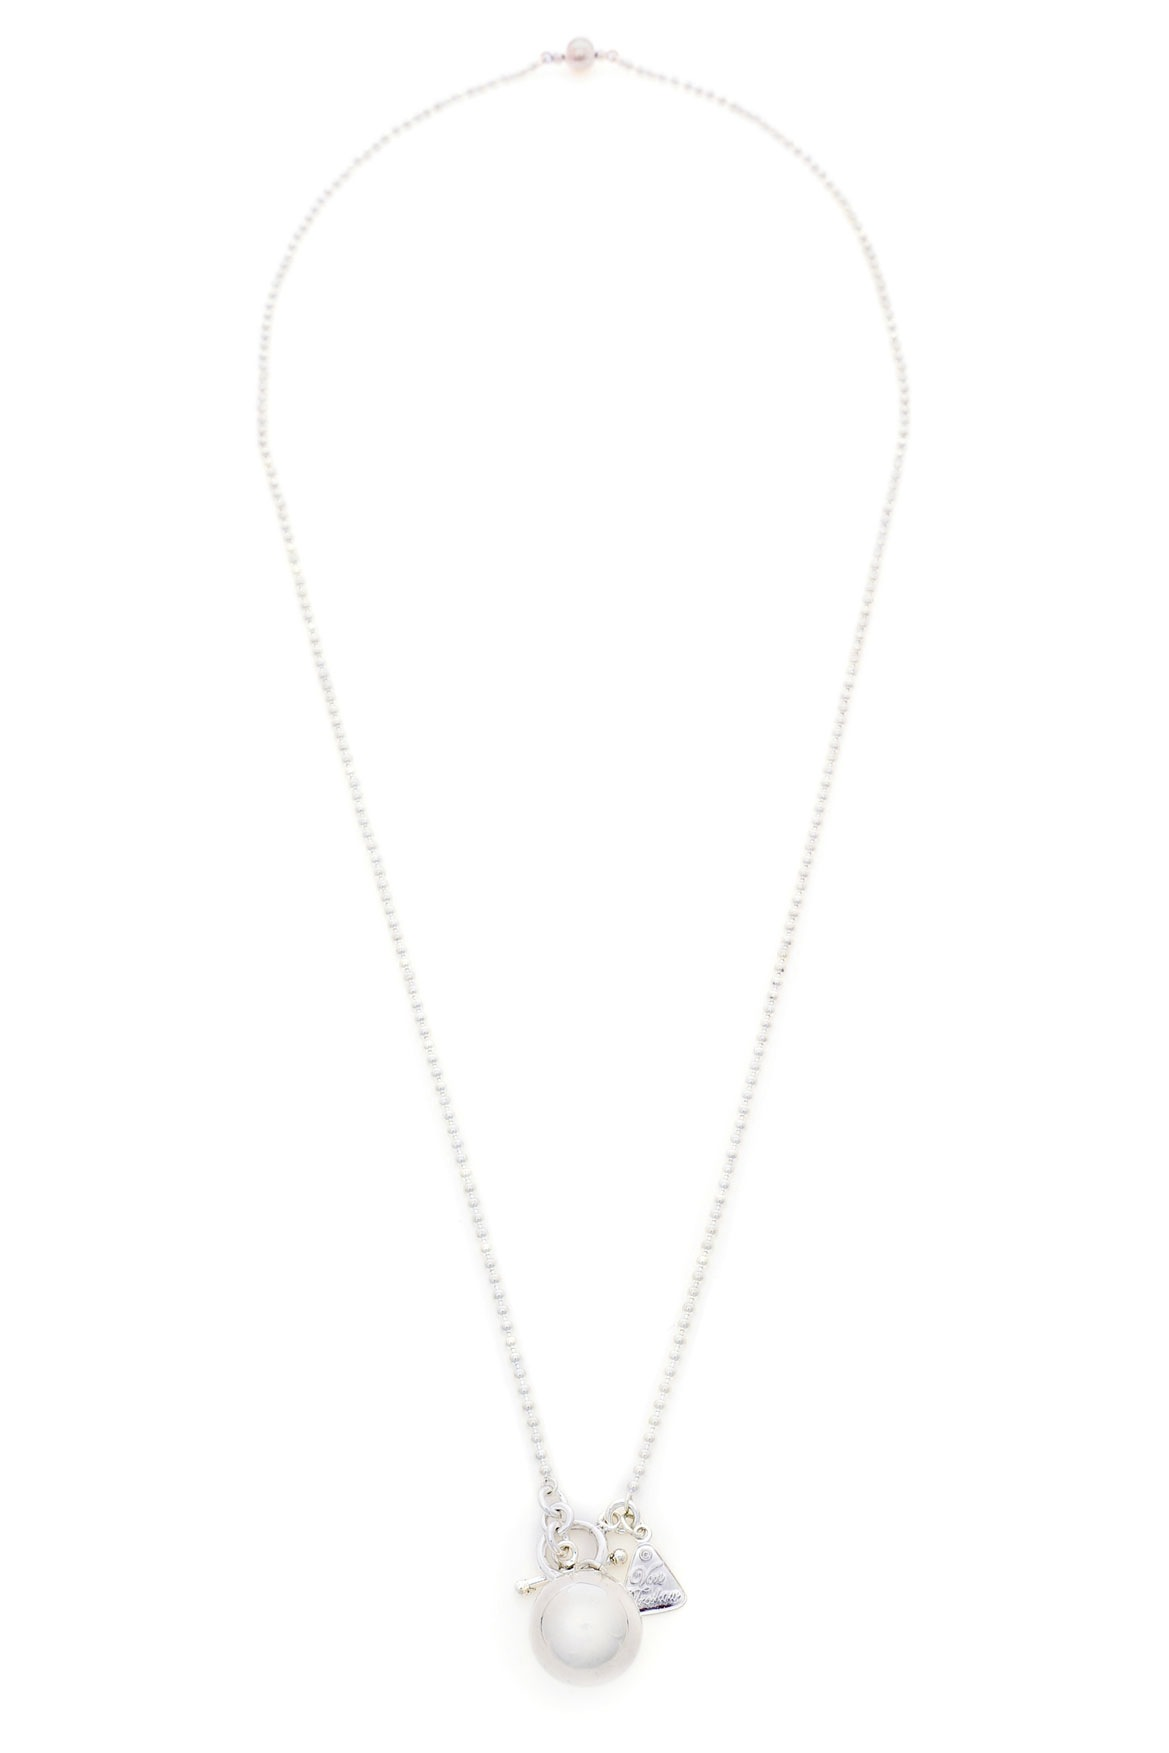 Von treskow sterling silver ball pendant necklace myer online aloadofball Image collections